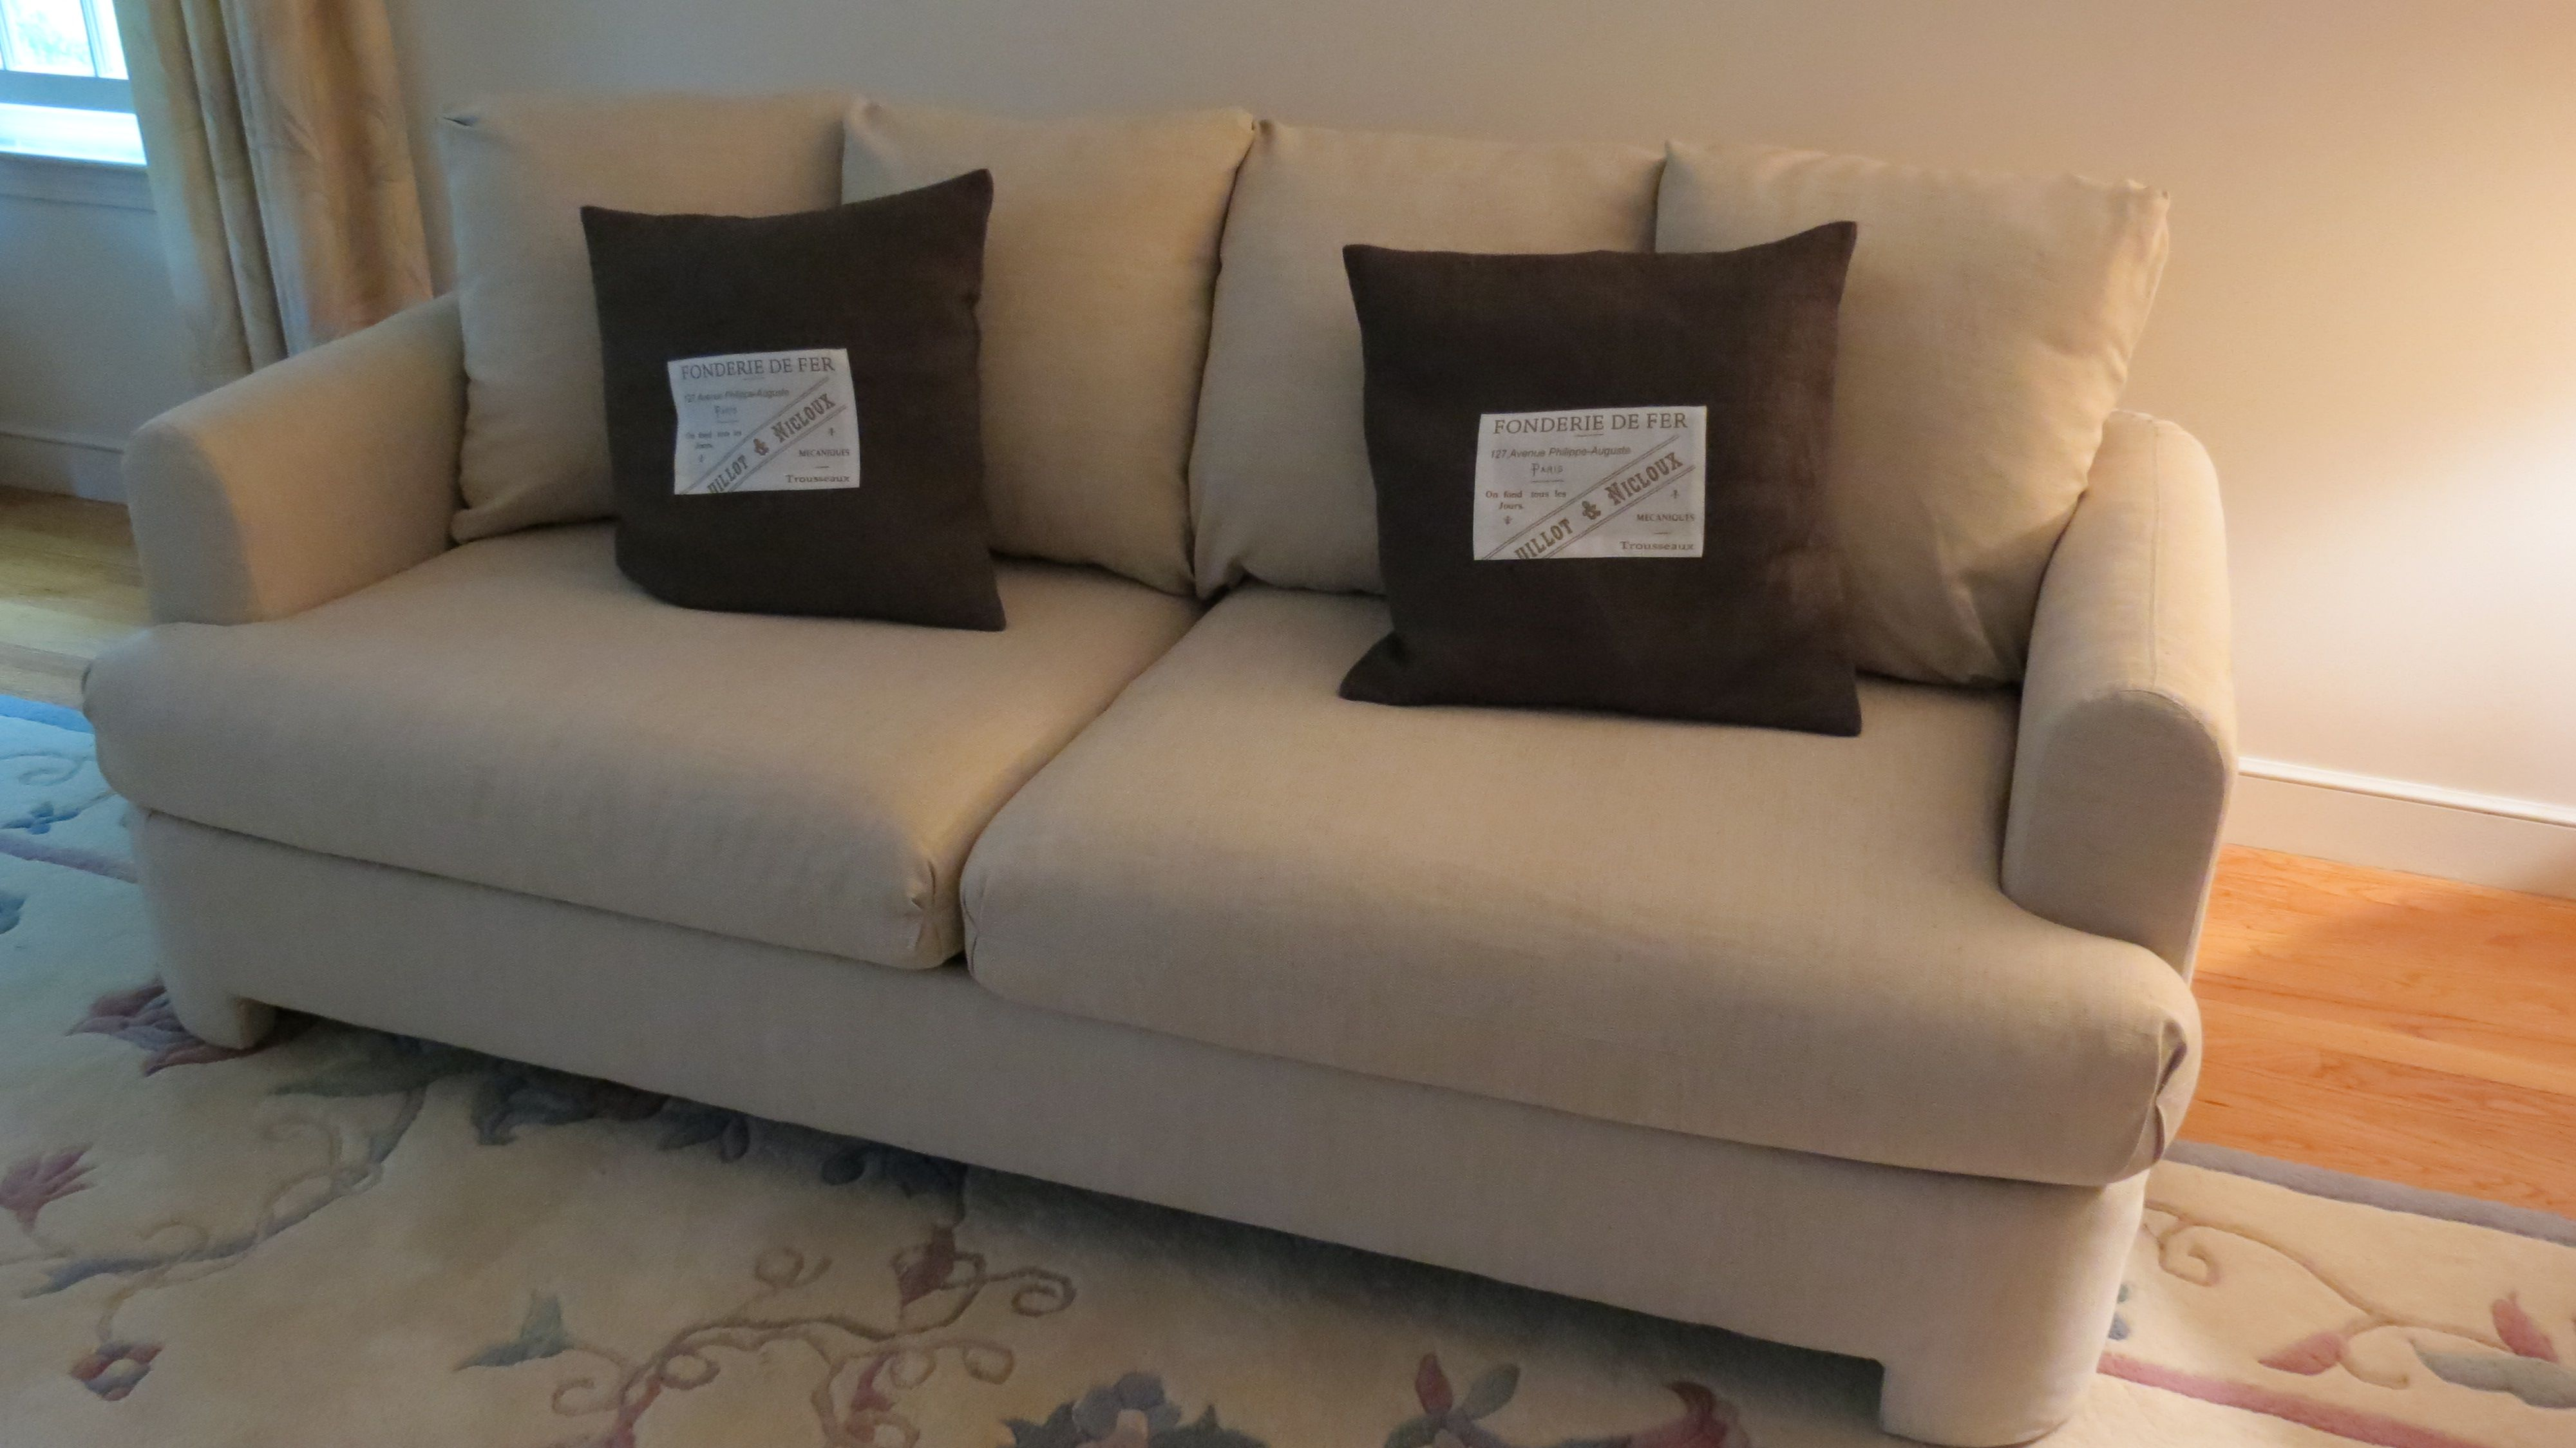 Reupholster Couch Cushions Cost   Buying The Right Couch May Be An Effort  That Is Trying Than Many Give It Credit For.